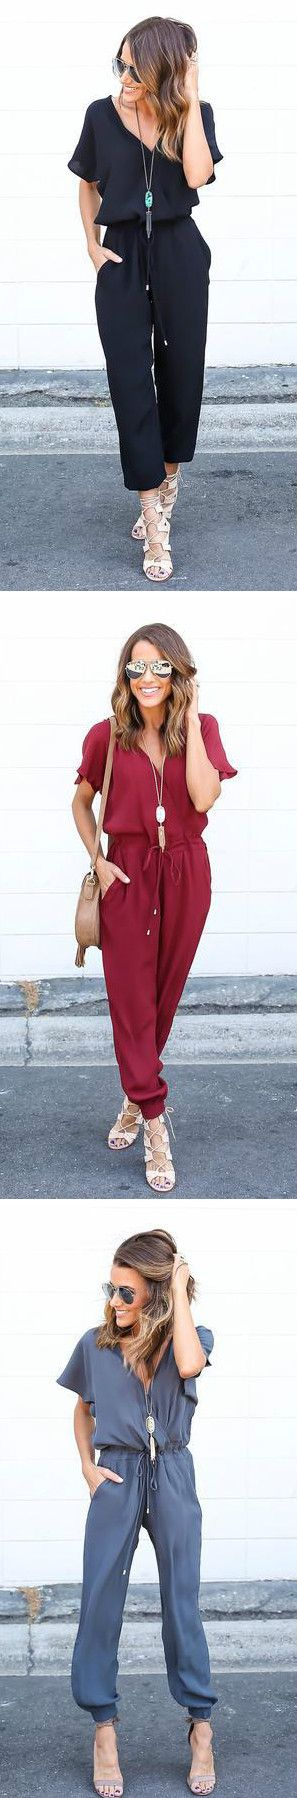 In love with this jumpsuit in black w strappy nude heels. Perfect deep v neck, cropped length, fluttery sleeves...gorgeous